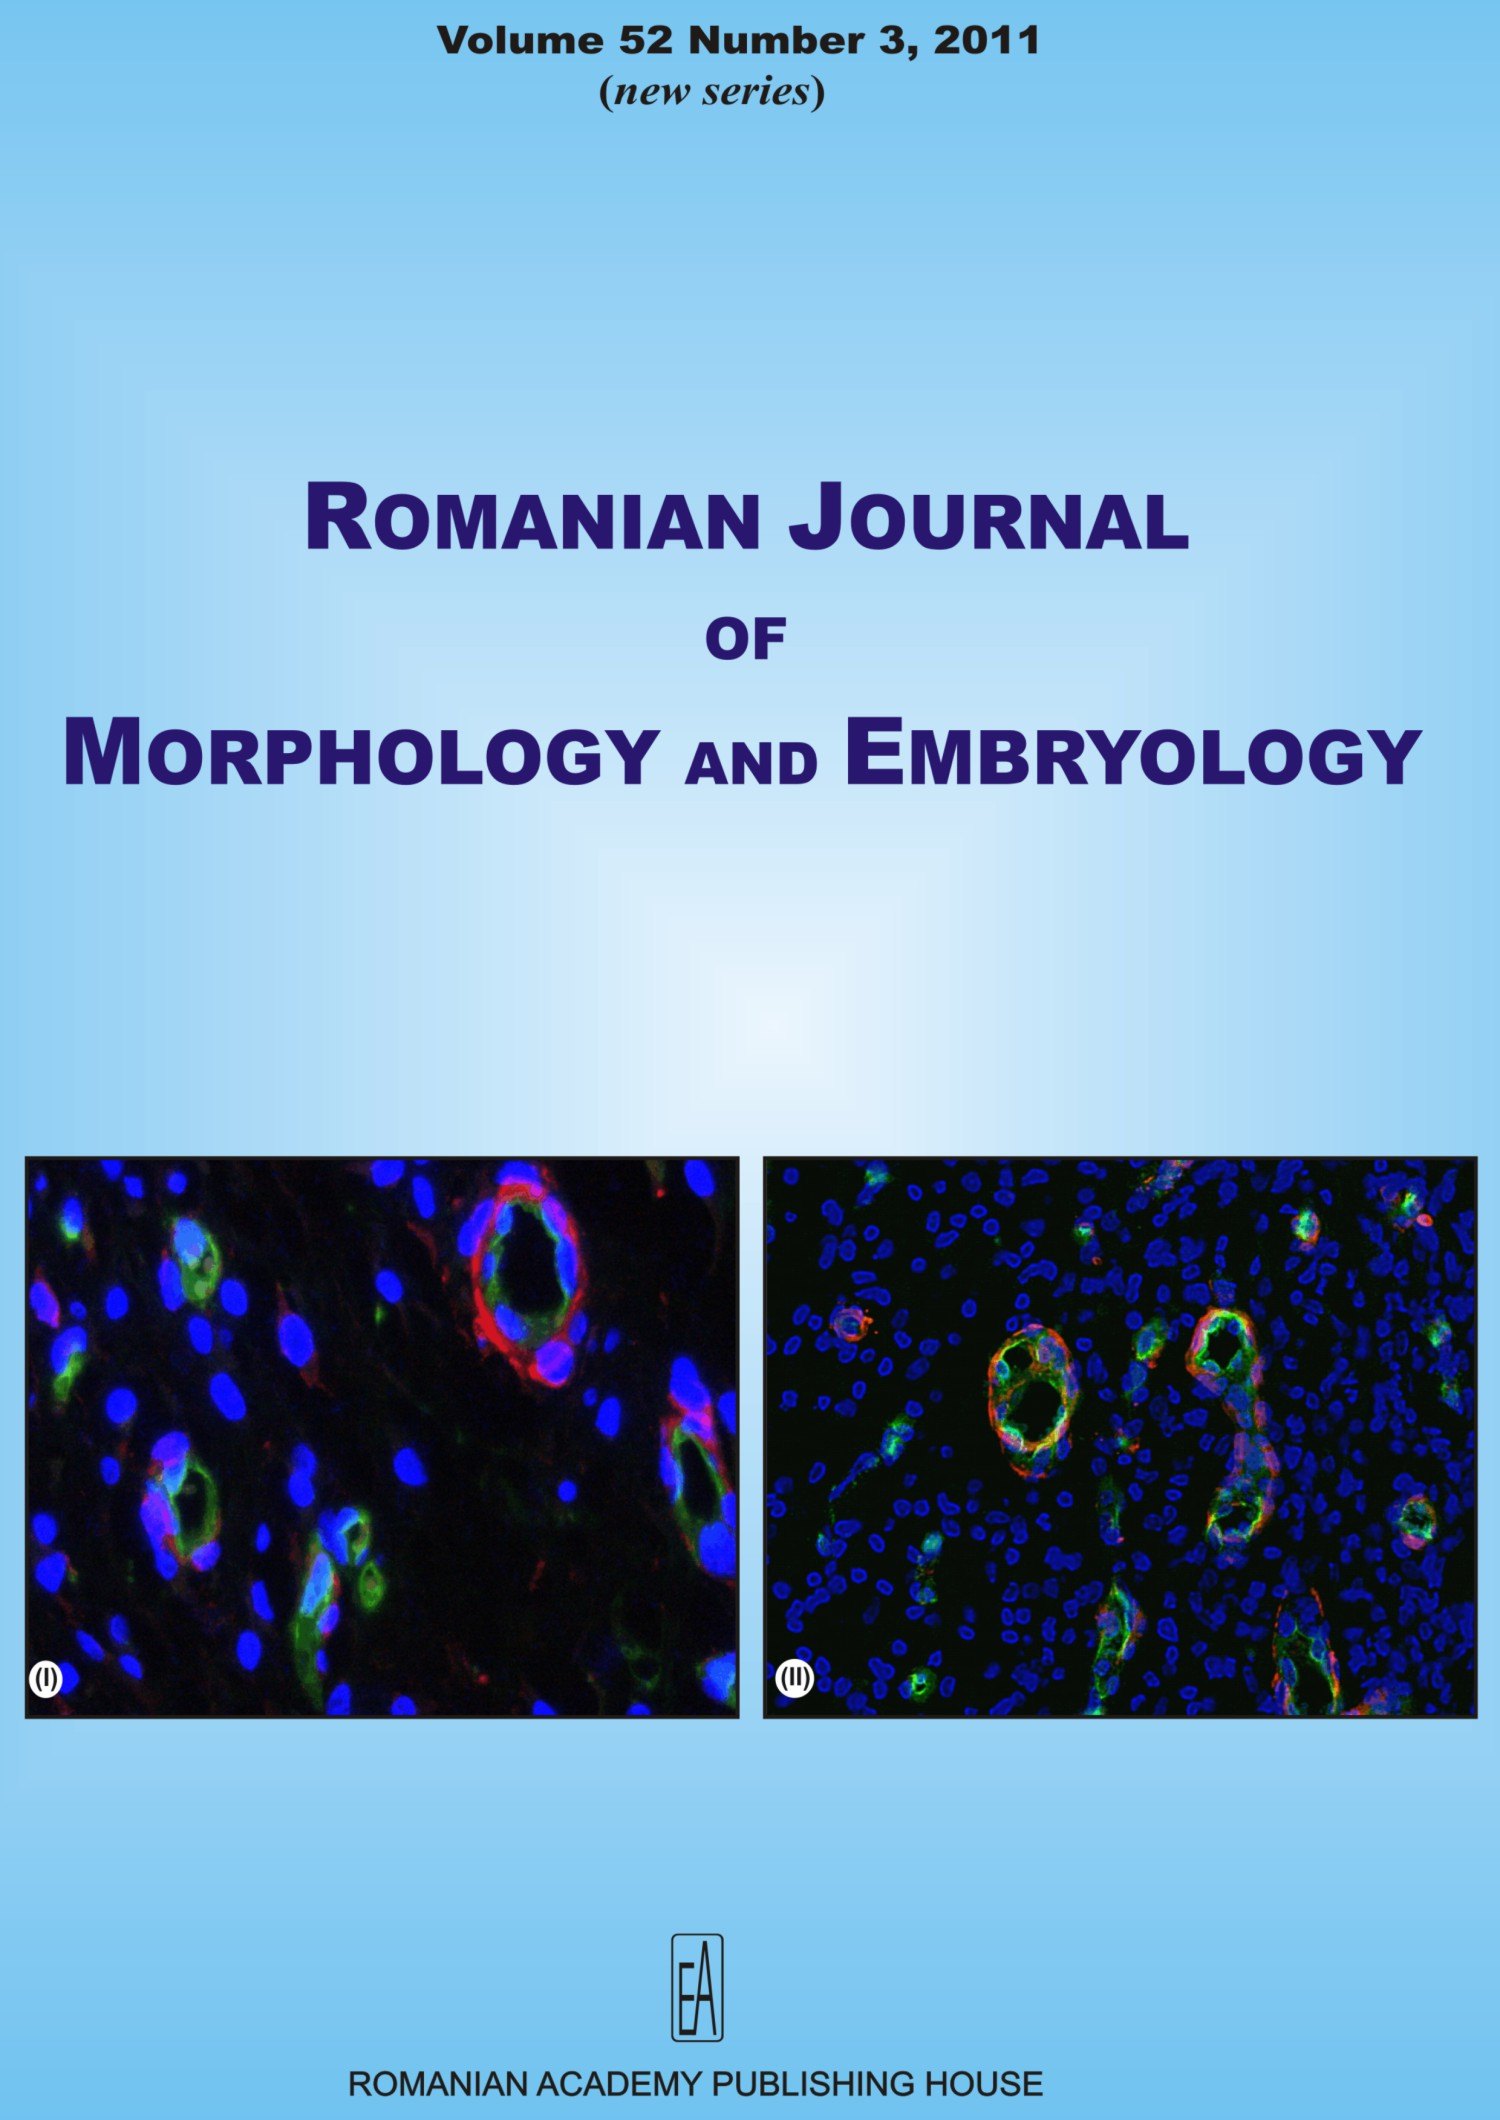 Romanian Journal of Morphology and Embryology, vol. 52 no. 3, 2011